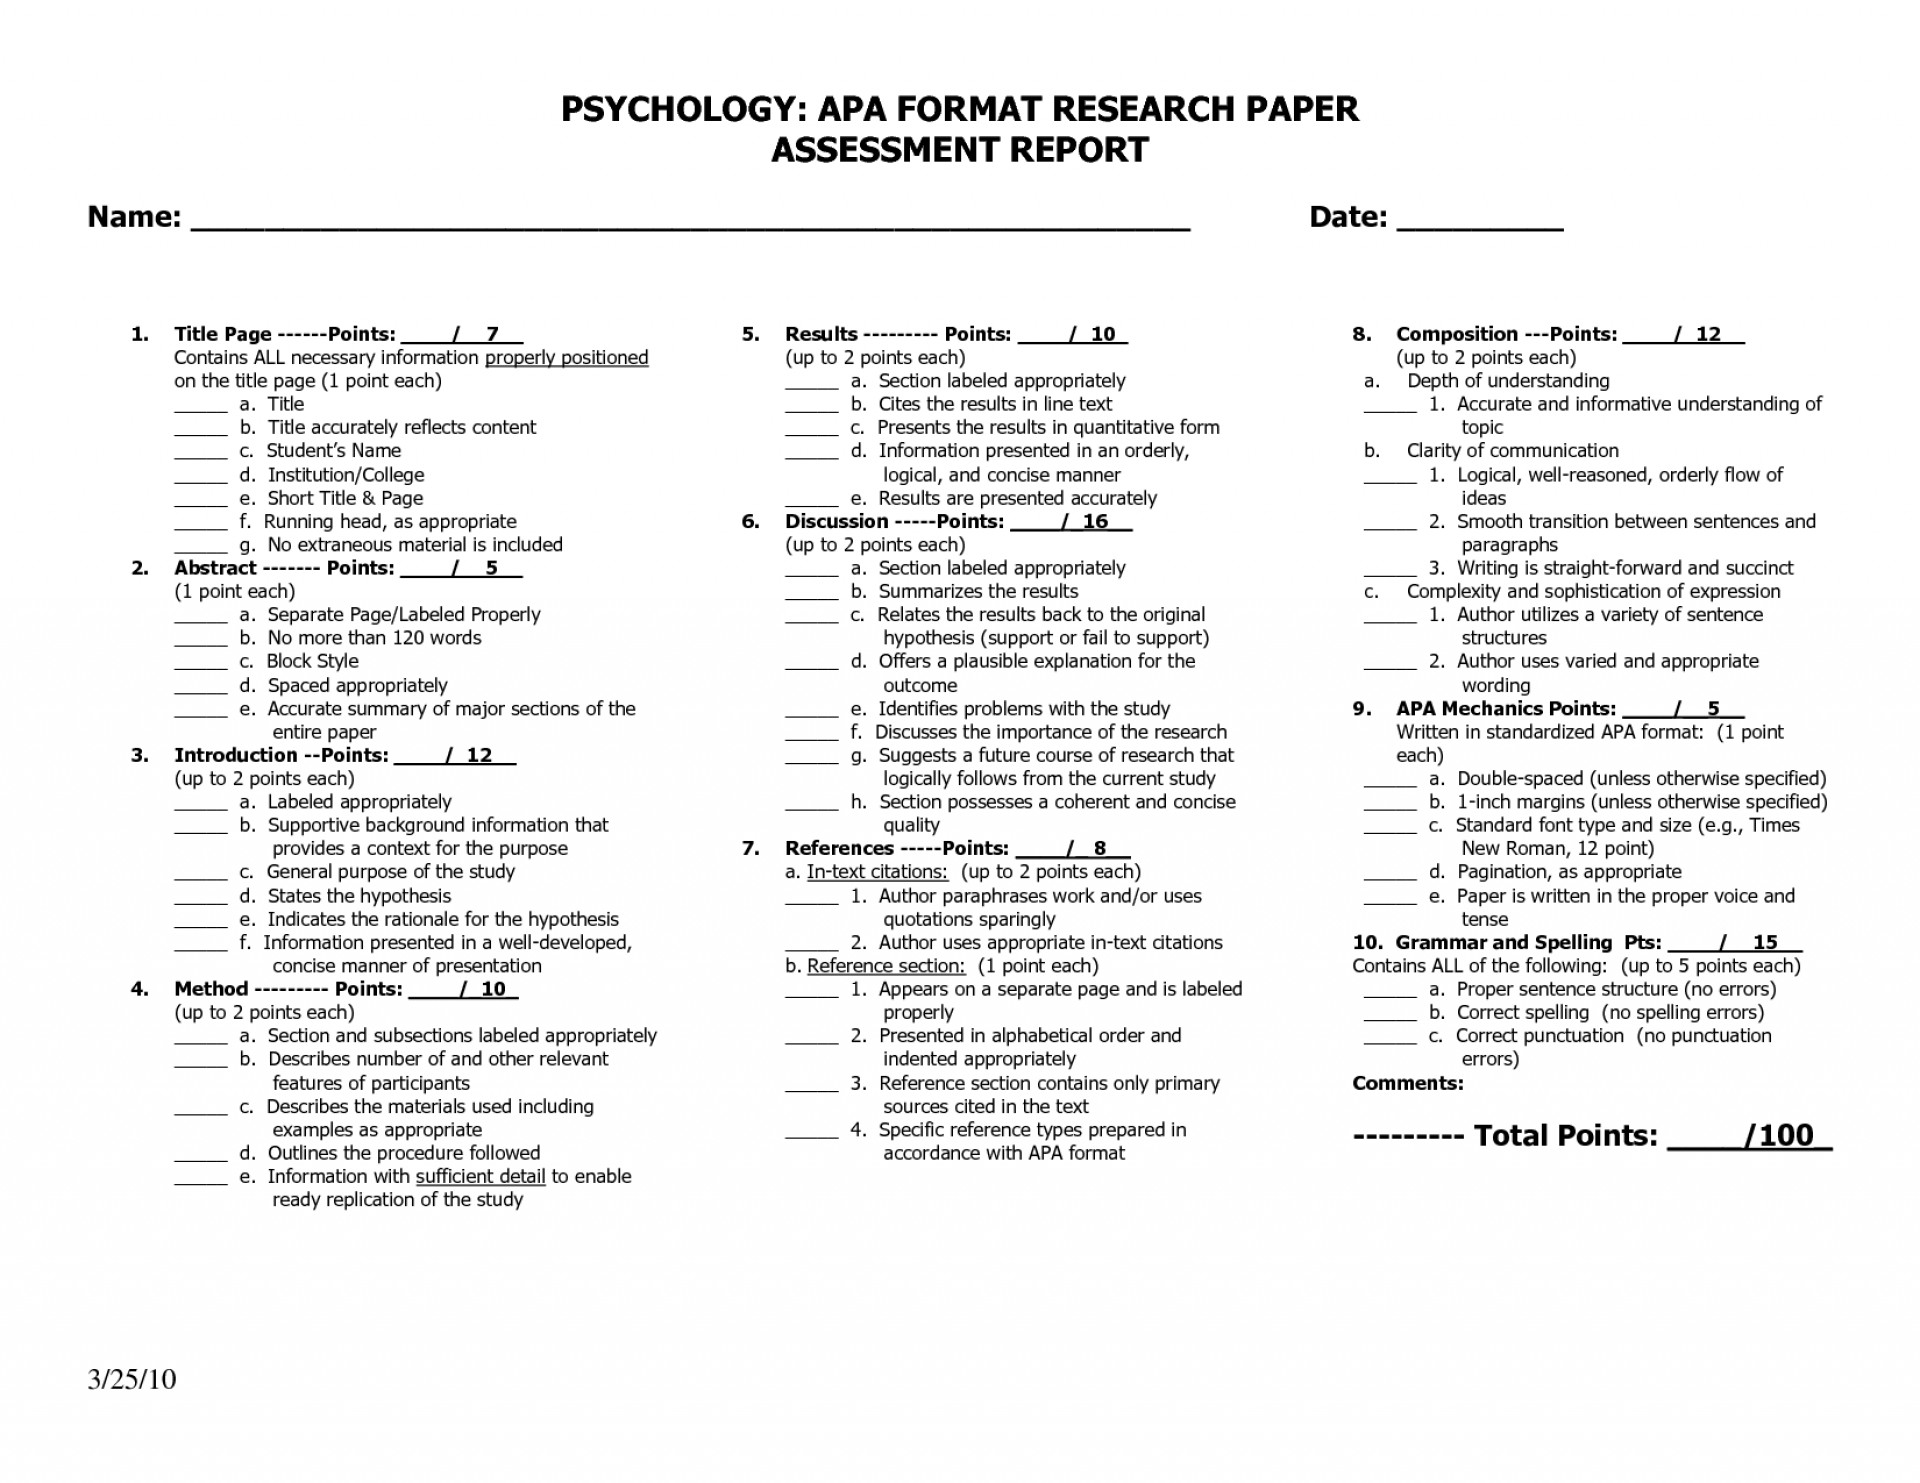 014 Research Paper Papers In Psychology Apamat Outstanding Recent Latest On Topics Cognitive 1920